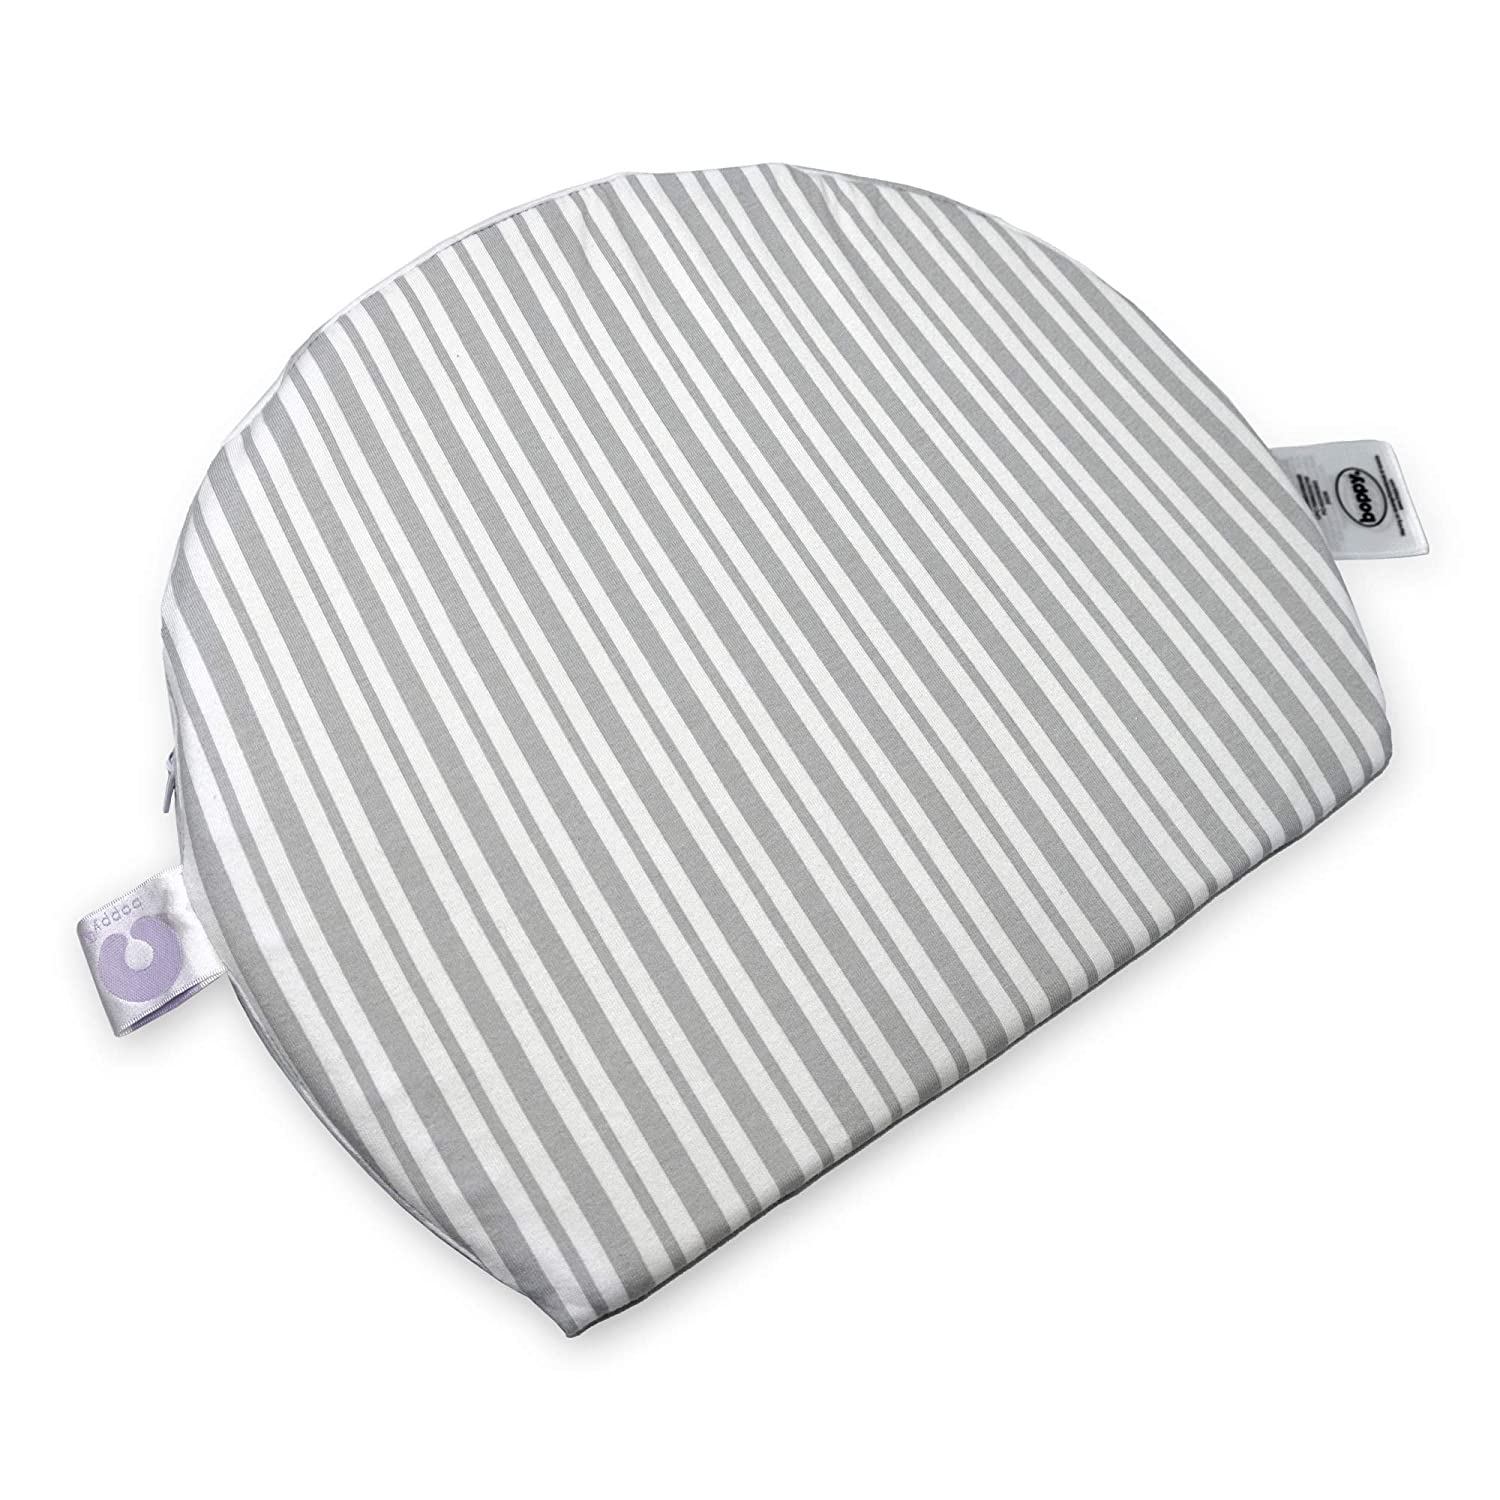 Boppy Pregnancy Wedge Pillow with Removable Jersey Pillow Cover   Gray Modern Stripe   Firm, Compact Support   Prenatal and Postnatal Positioning